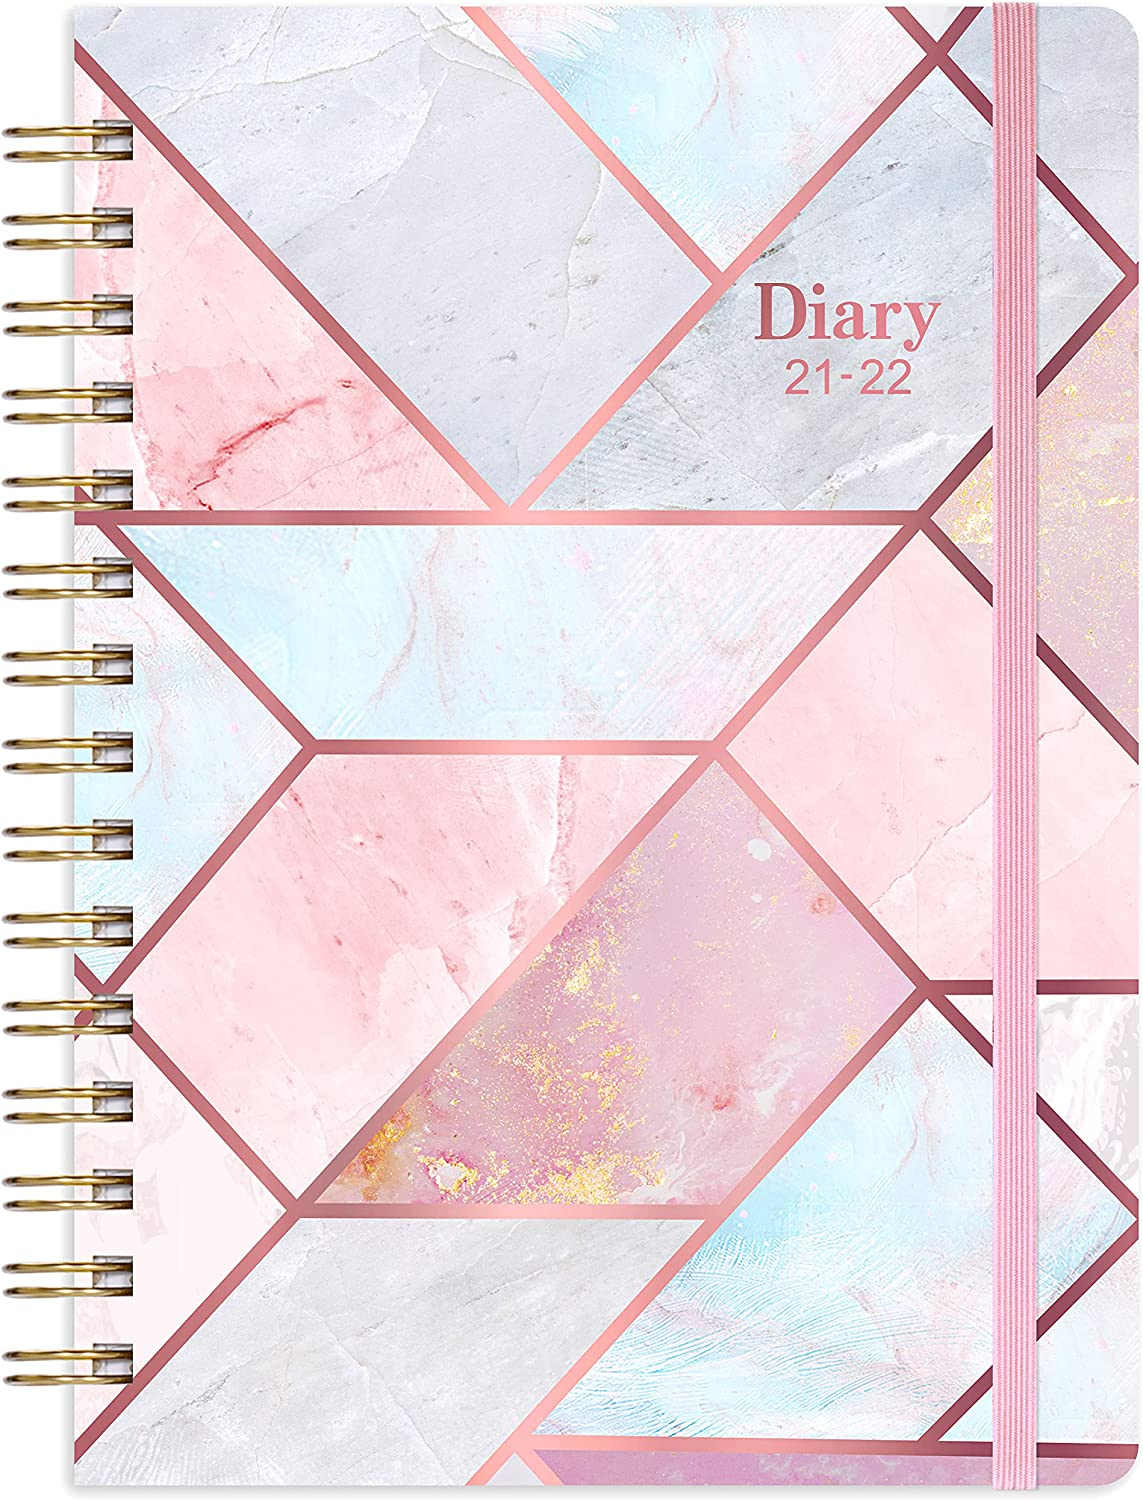 A20 20 Calendar, Weekly Planner, Calendar Overview of 20 and ...